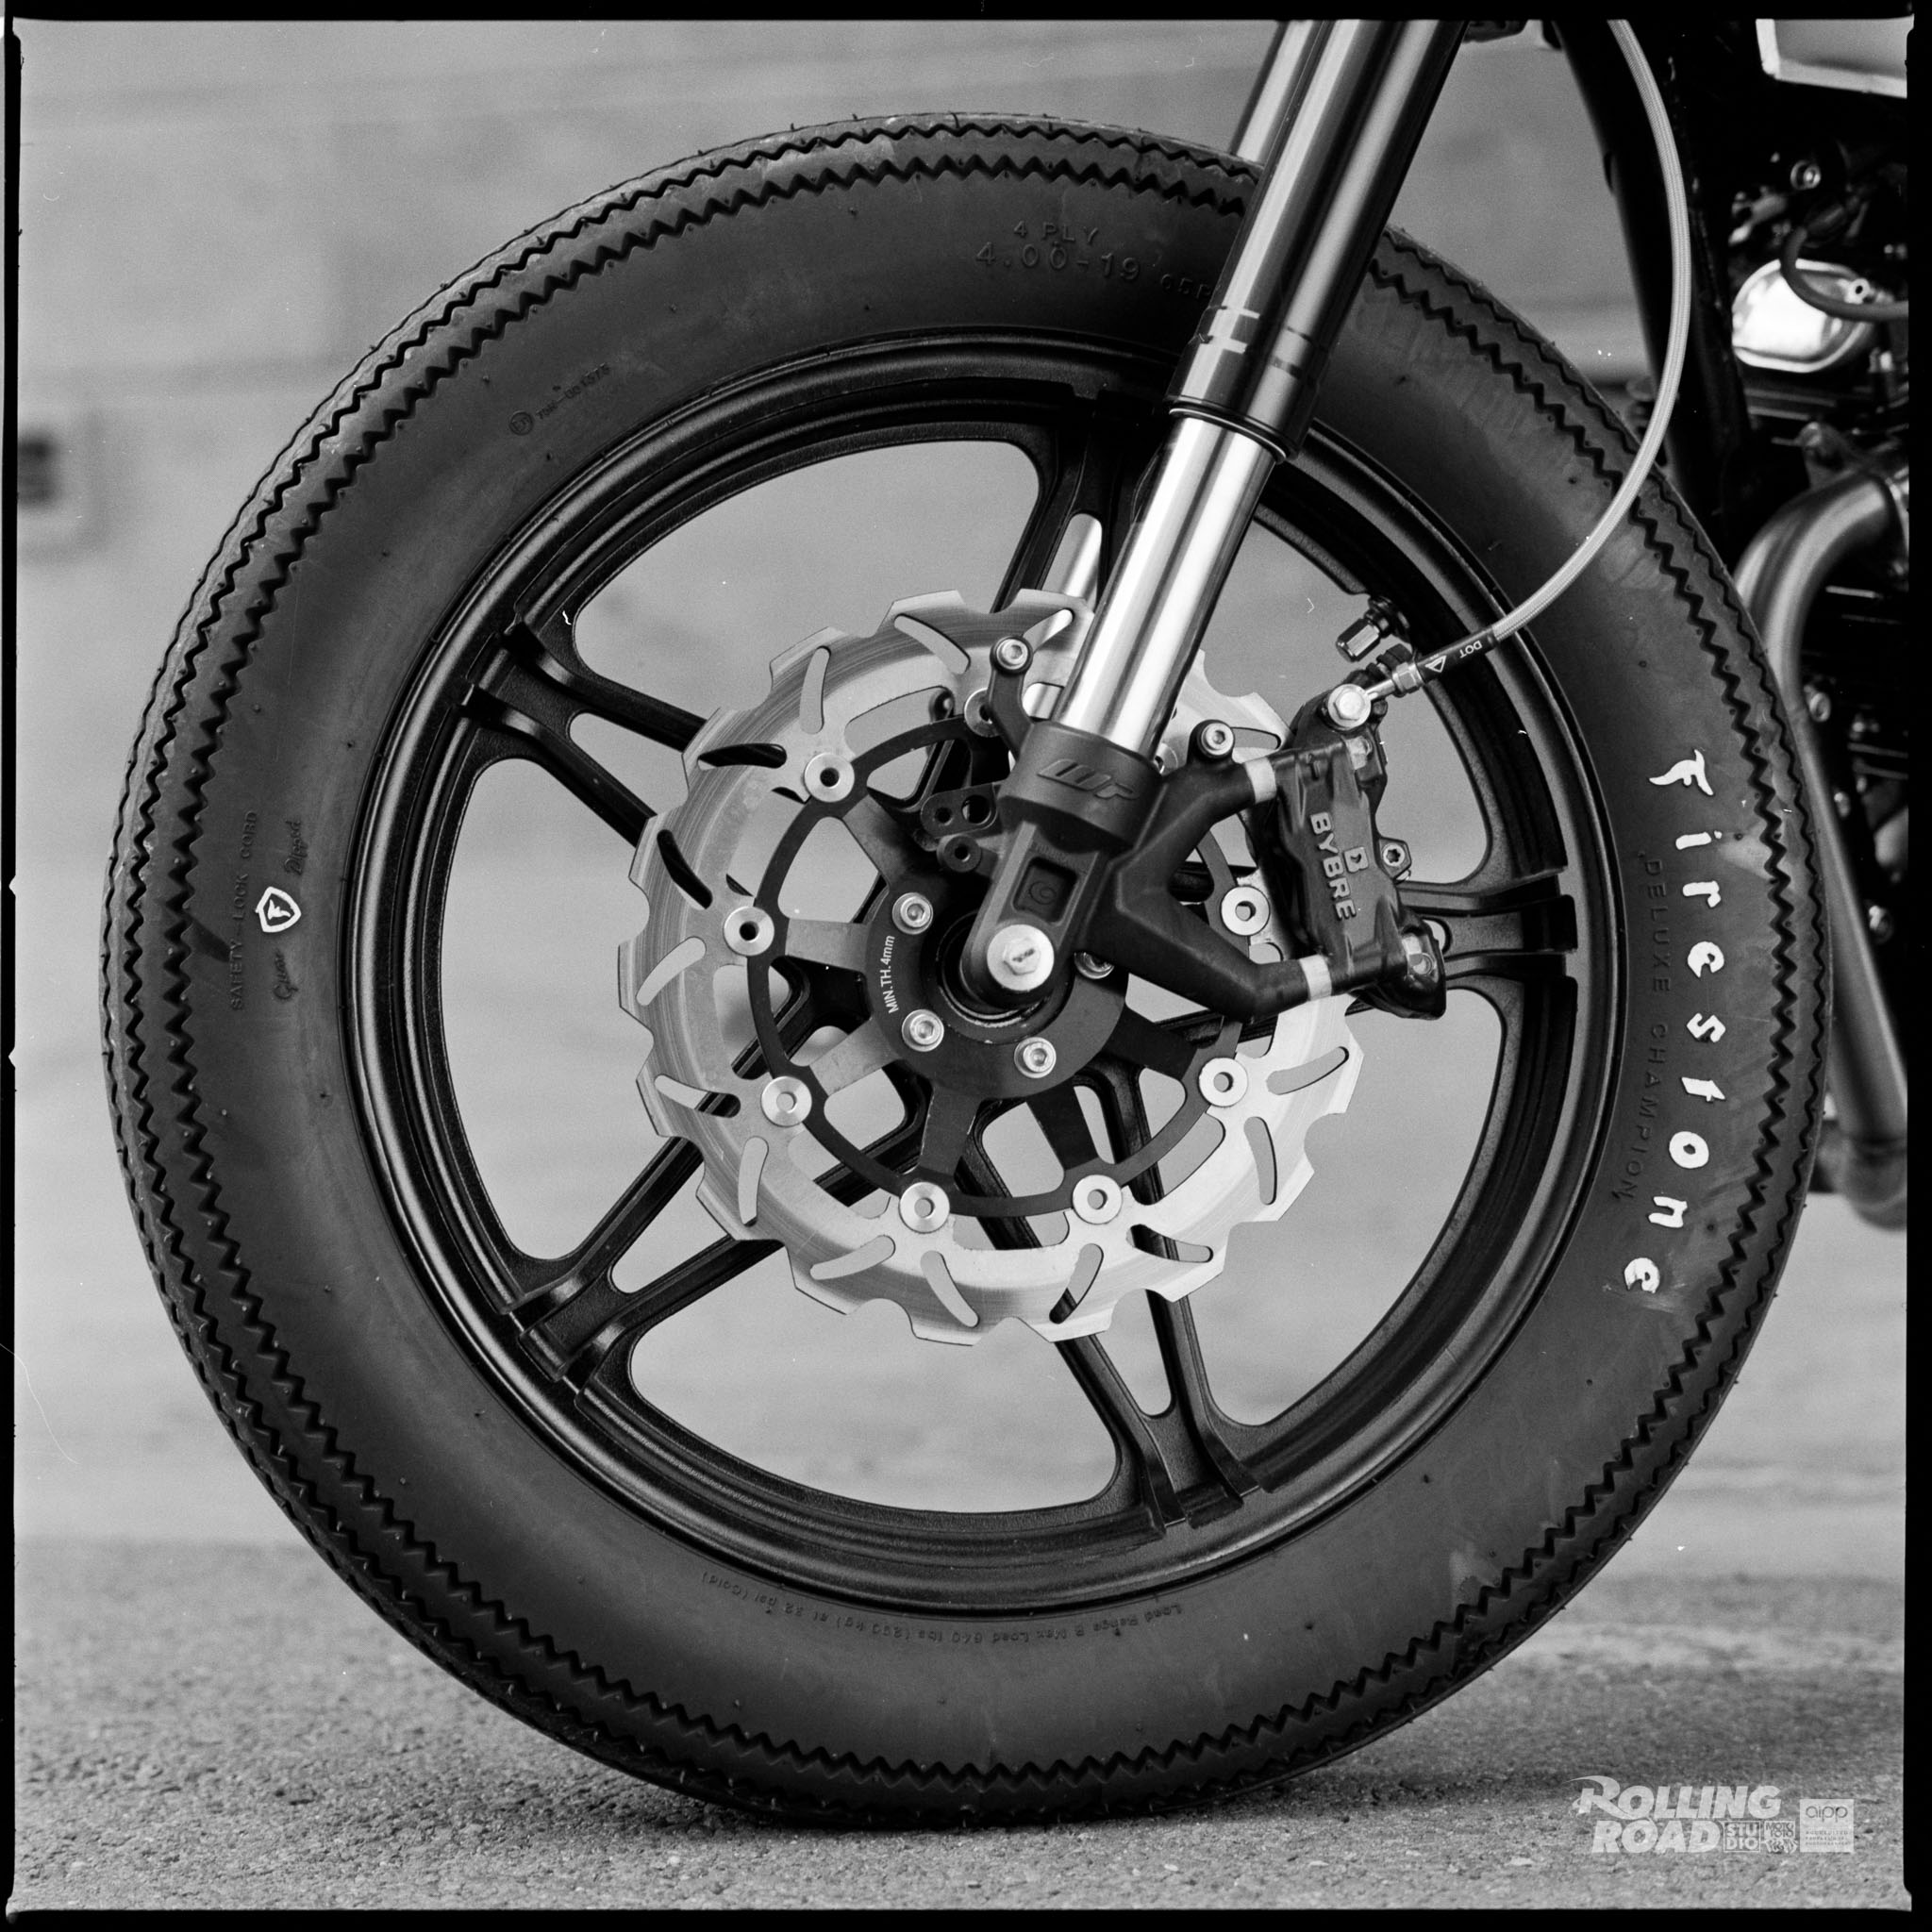 rolling-road-studio-daniel-purvis-photography-motorcycle-005.jpg